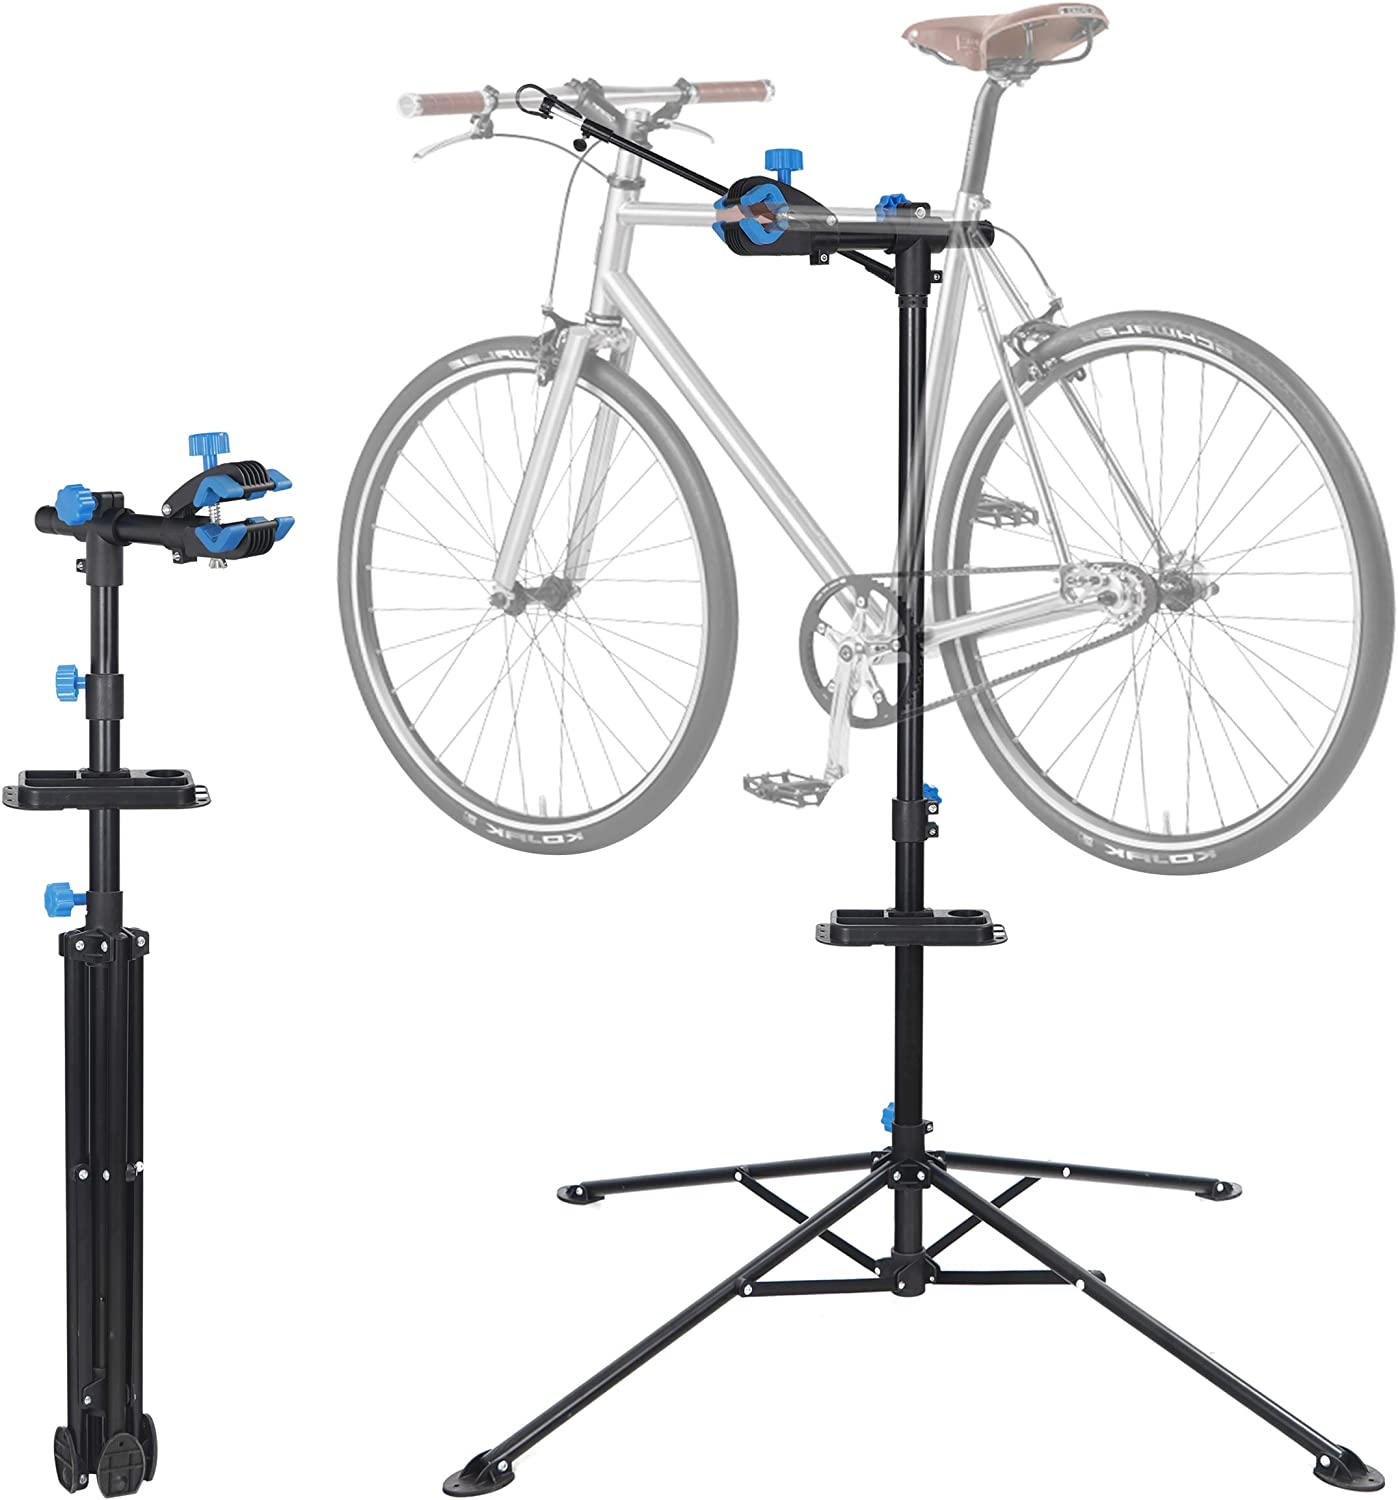 Amazon Com F2c Portable Adjustable 42 5 To 74 Pro Home Steel Maintenance Mechanic Bicycle Bike Repair Tool Rack Stands Workstand W Telescopic Arm Tool Tray Balancing Pole Cycle Bicycle Rack Sports